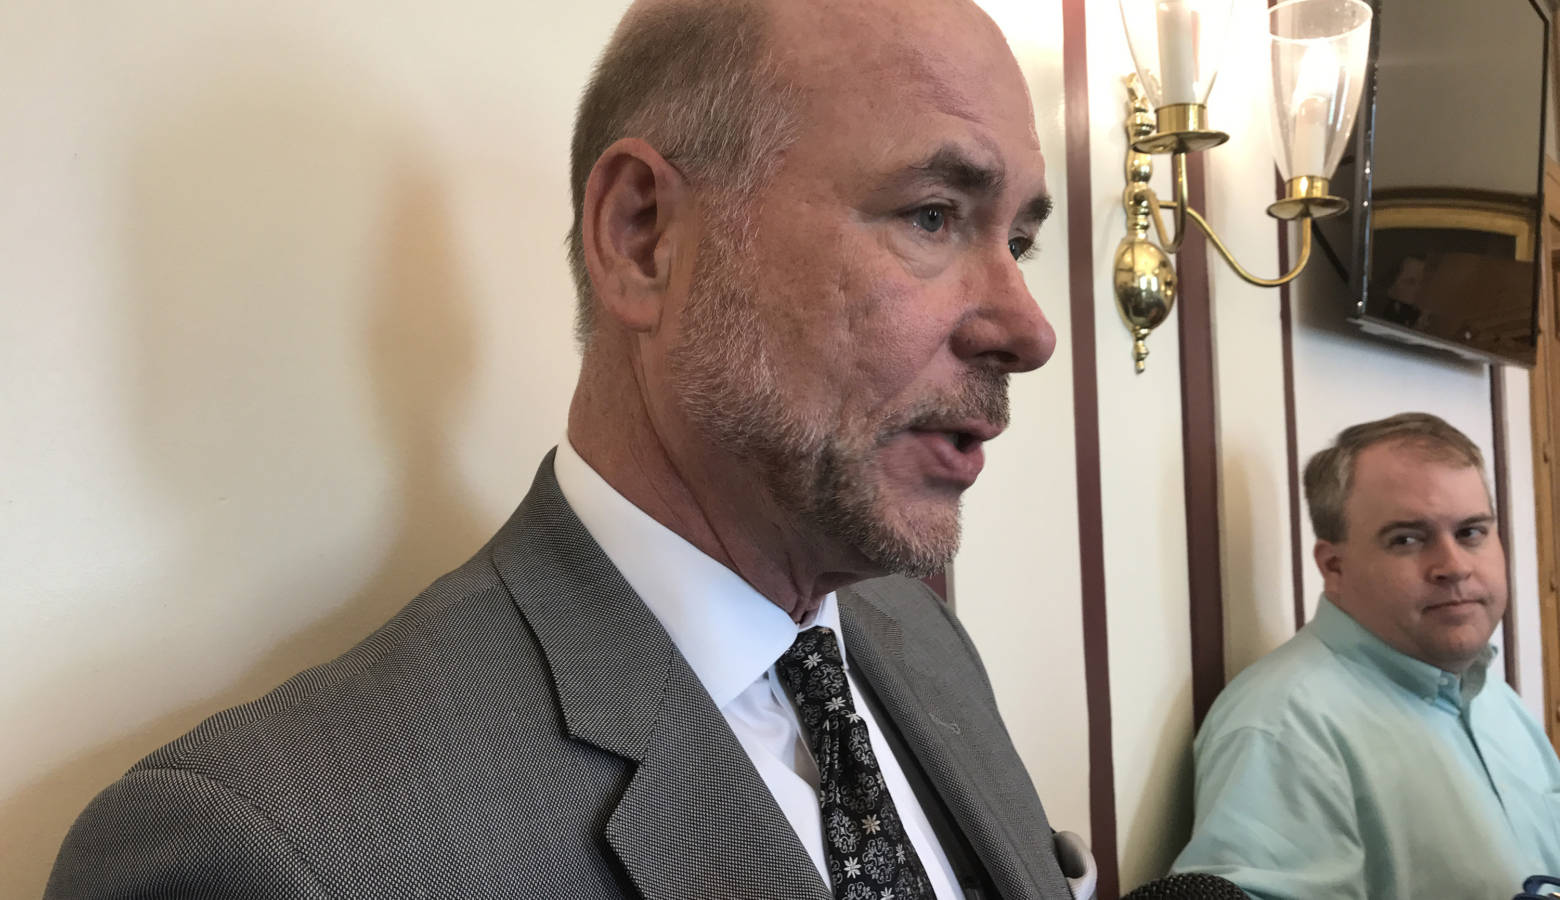 House Speaker Brian Bosma (R-Indianapolis) says he's not sure hate crimes need to be studied further. (Brandon Smith/IPB News)